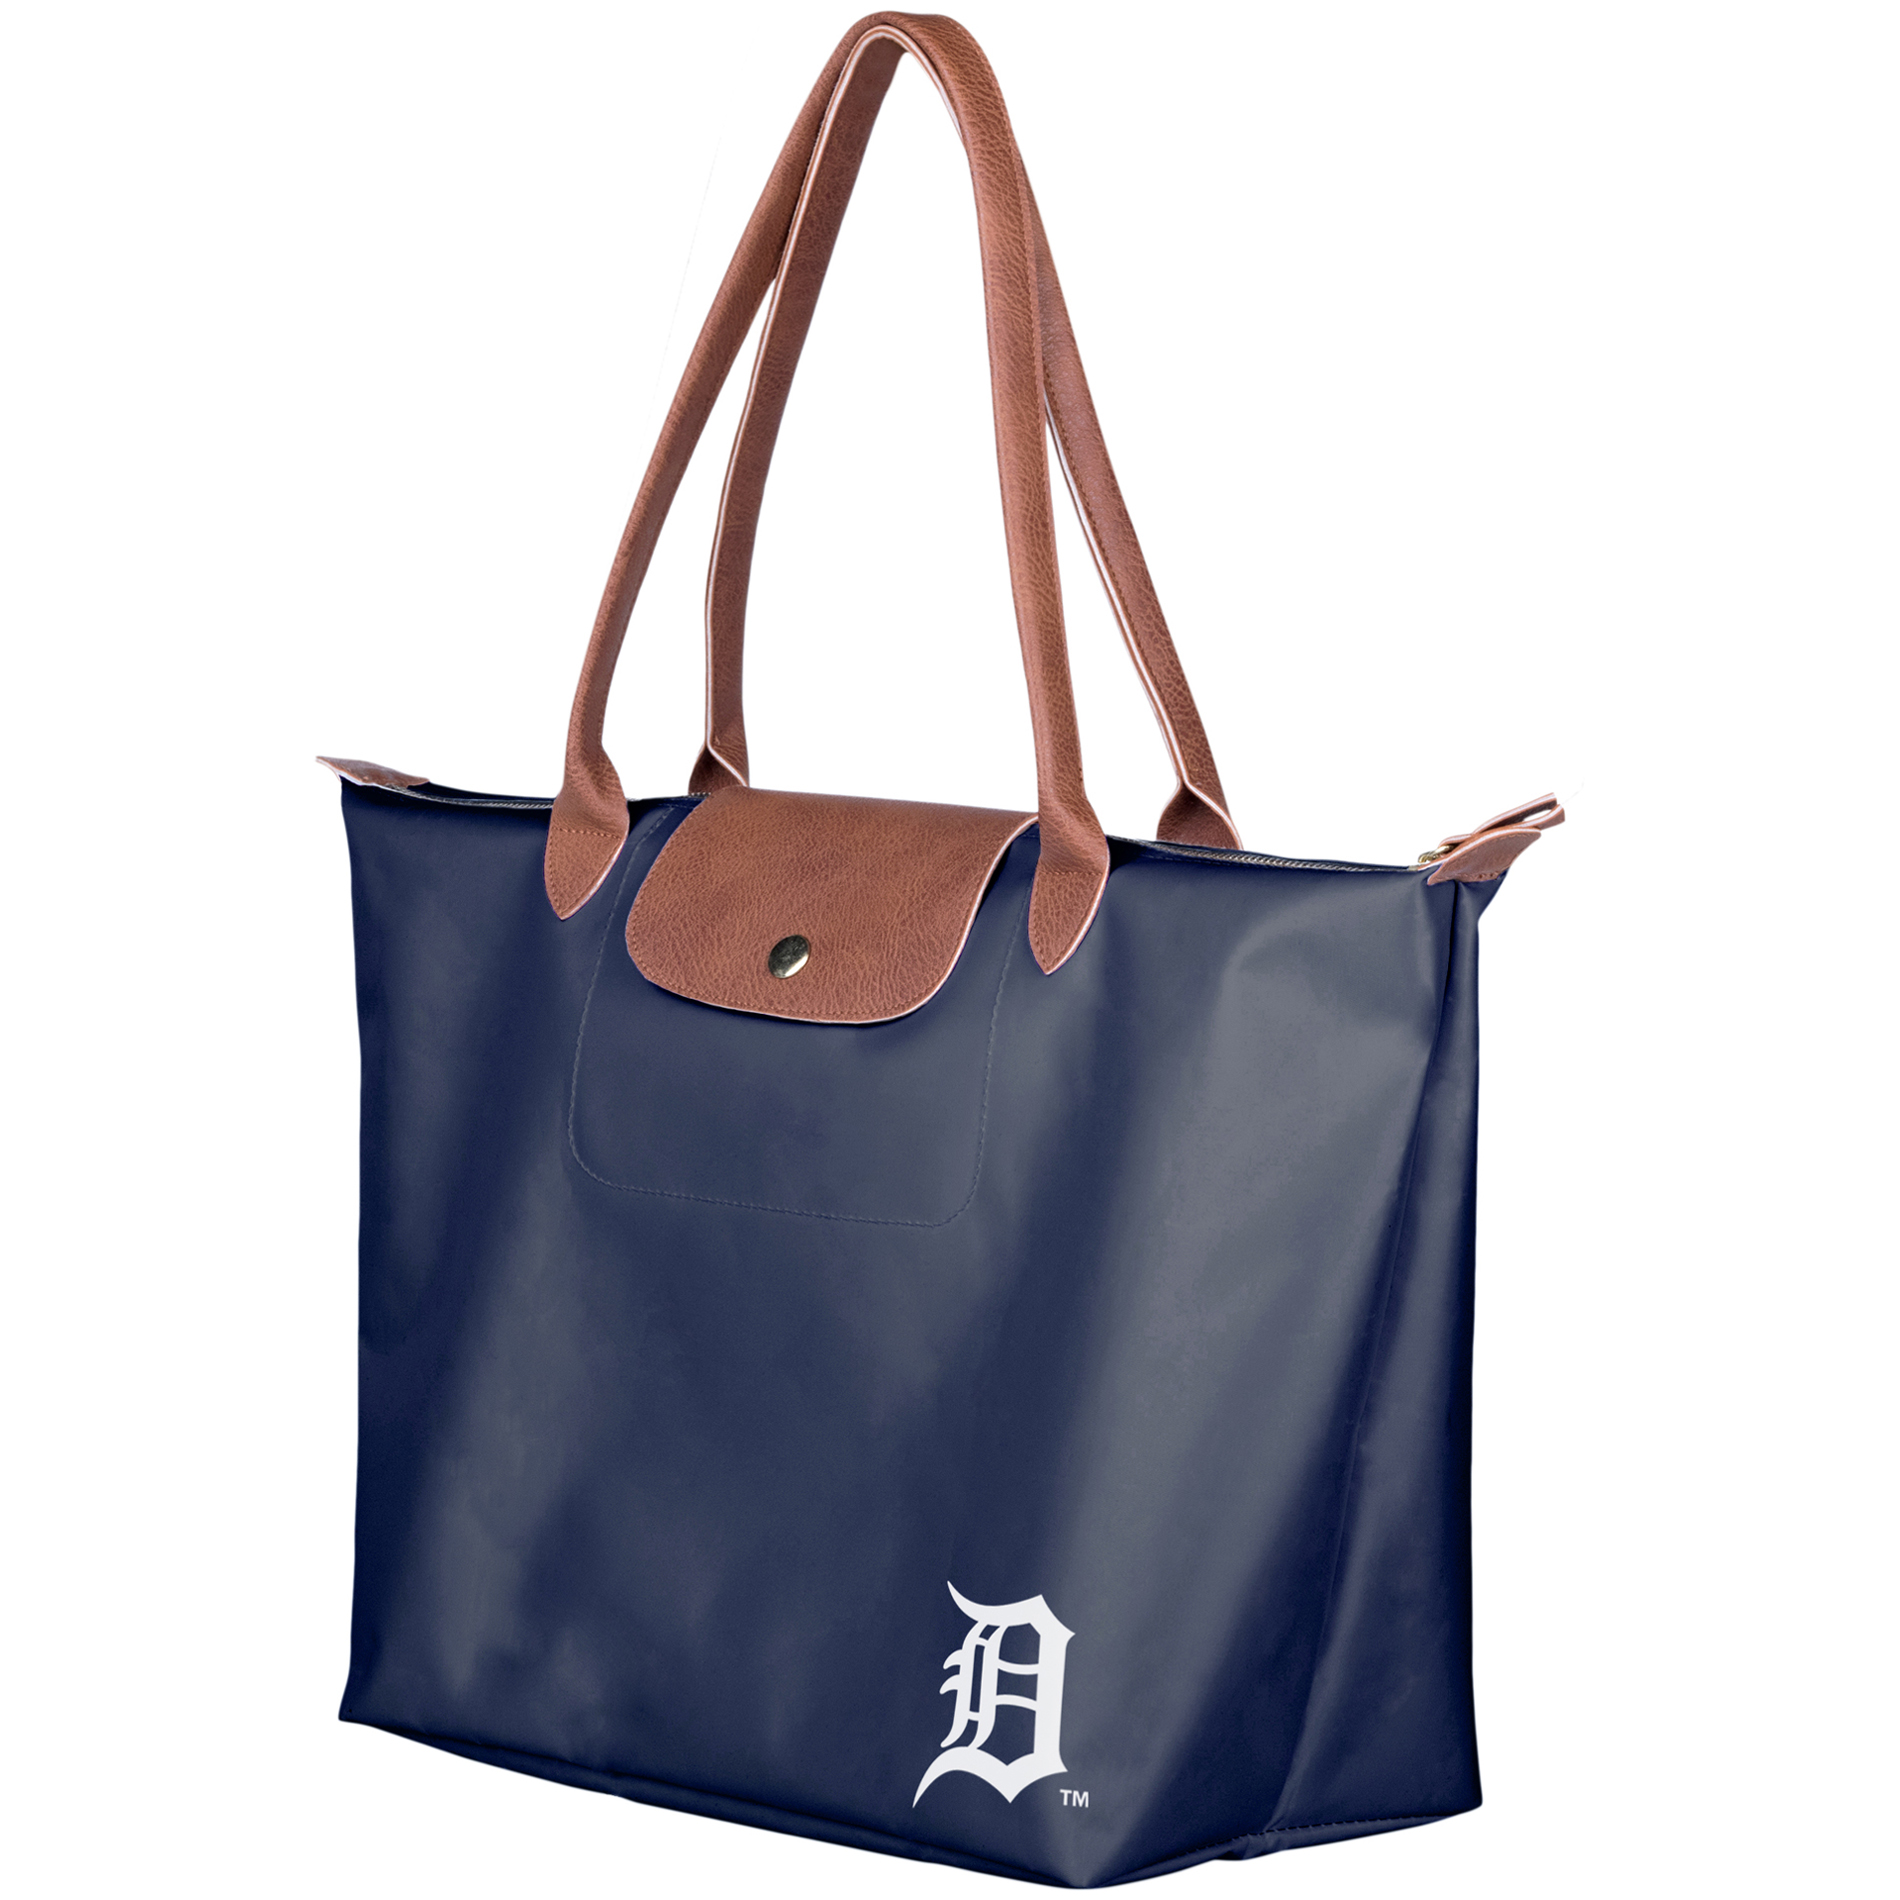 Detroit Tigers Women's Travel Tote Bag - Navy - No Size